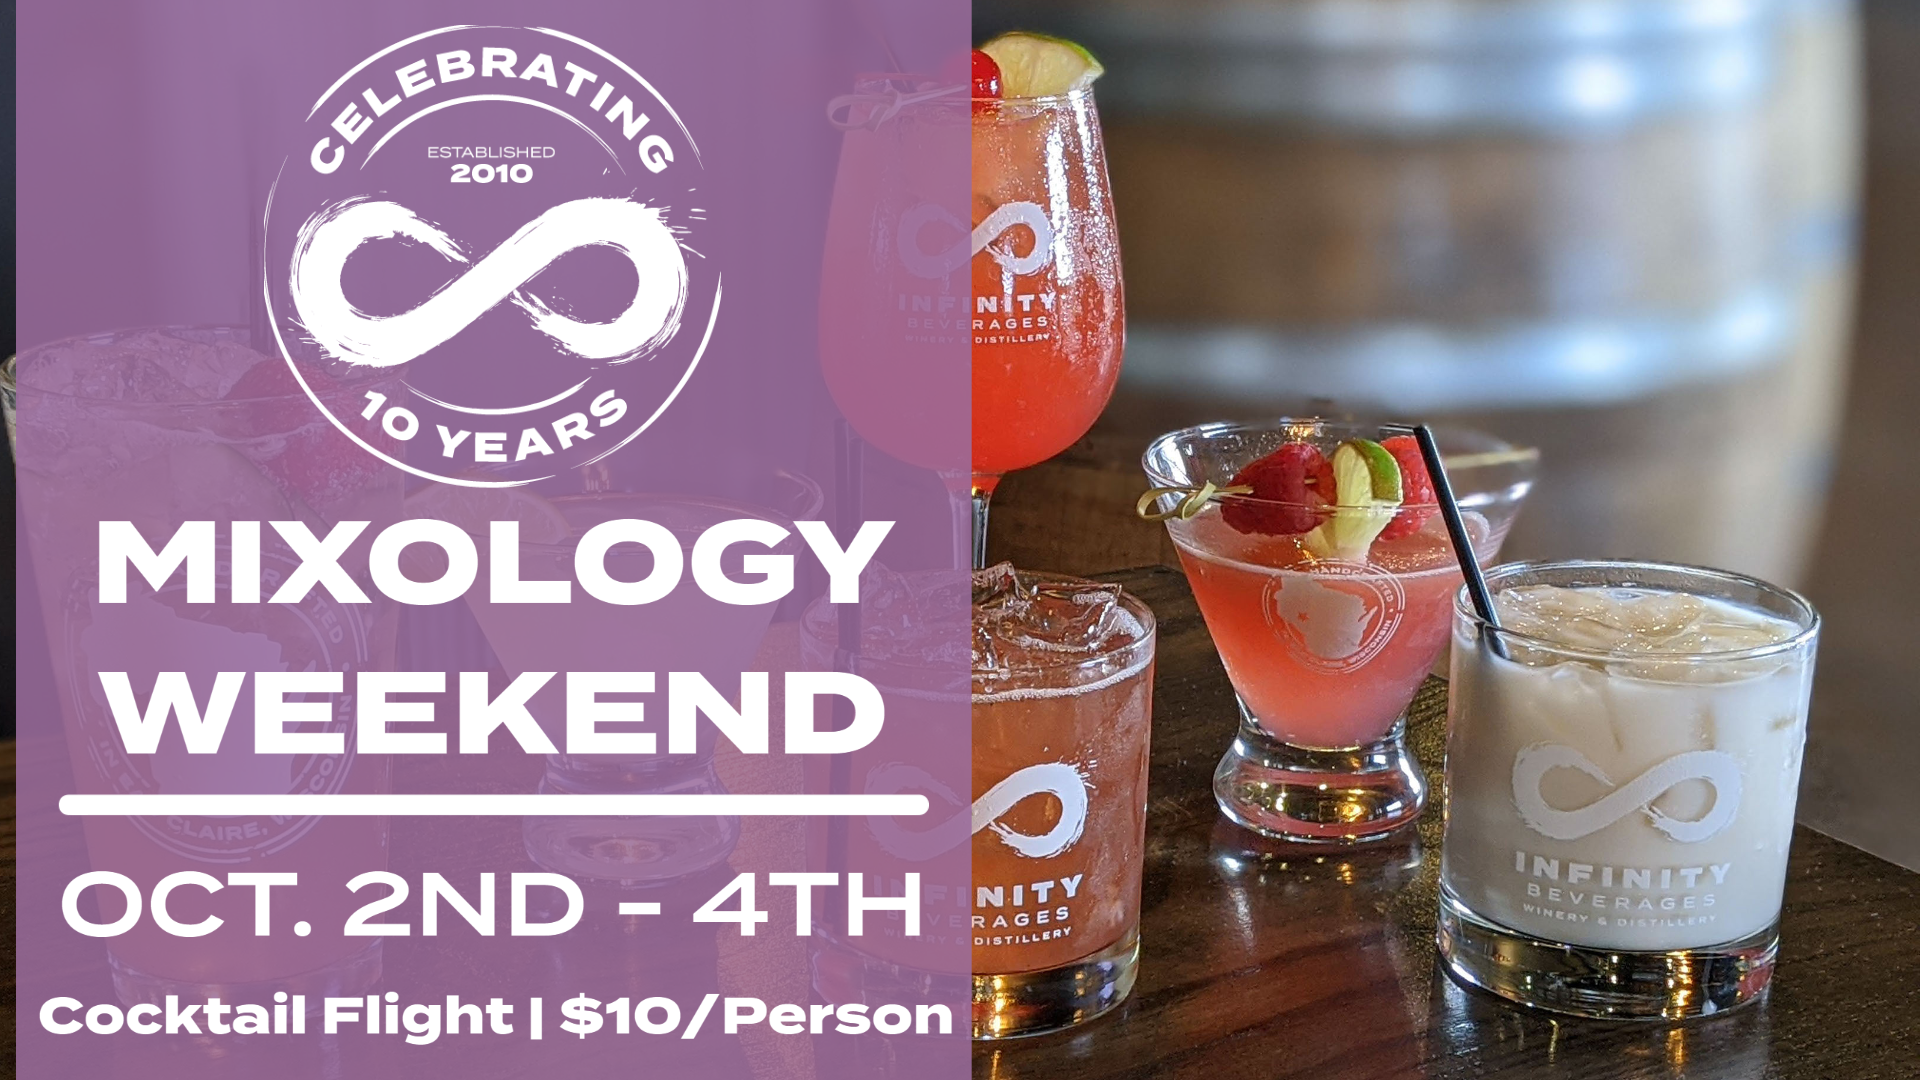 MIXOLOGY WEEKEND